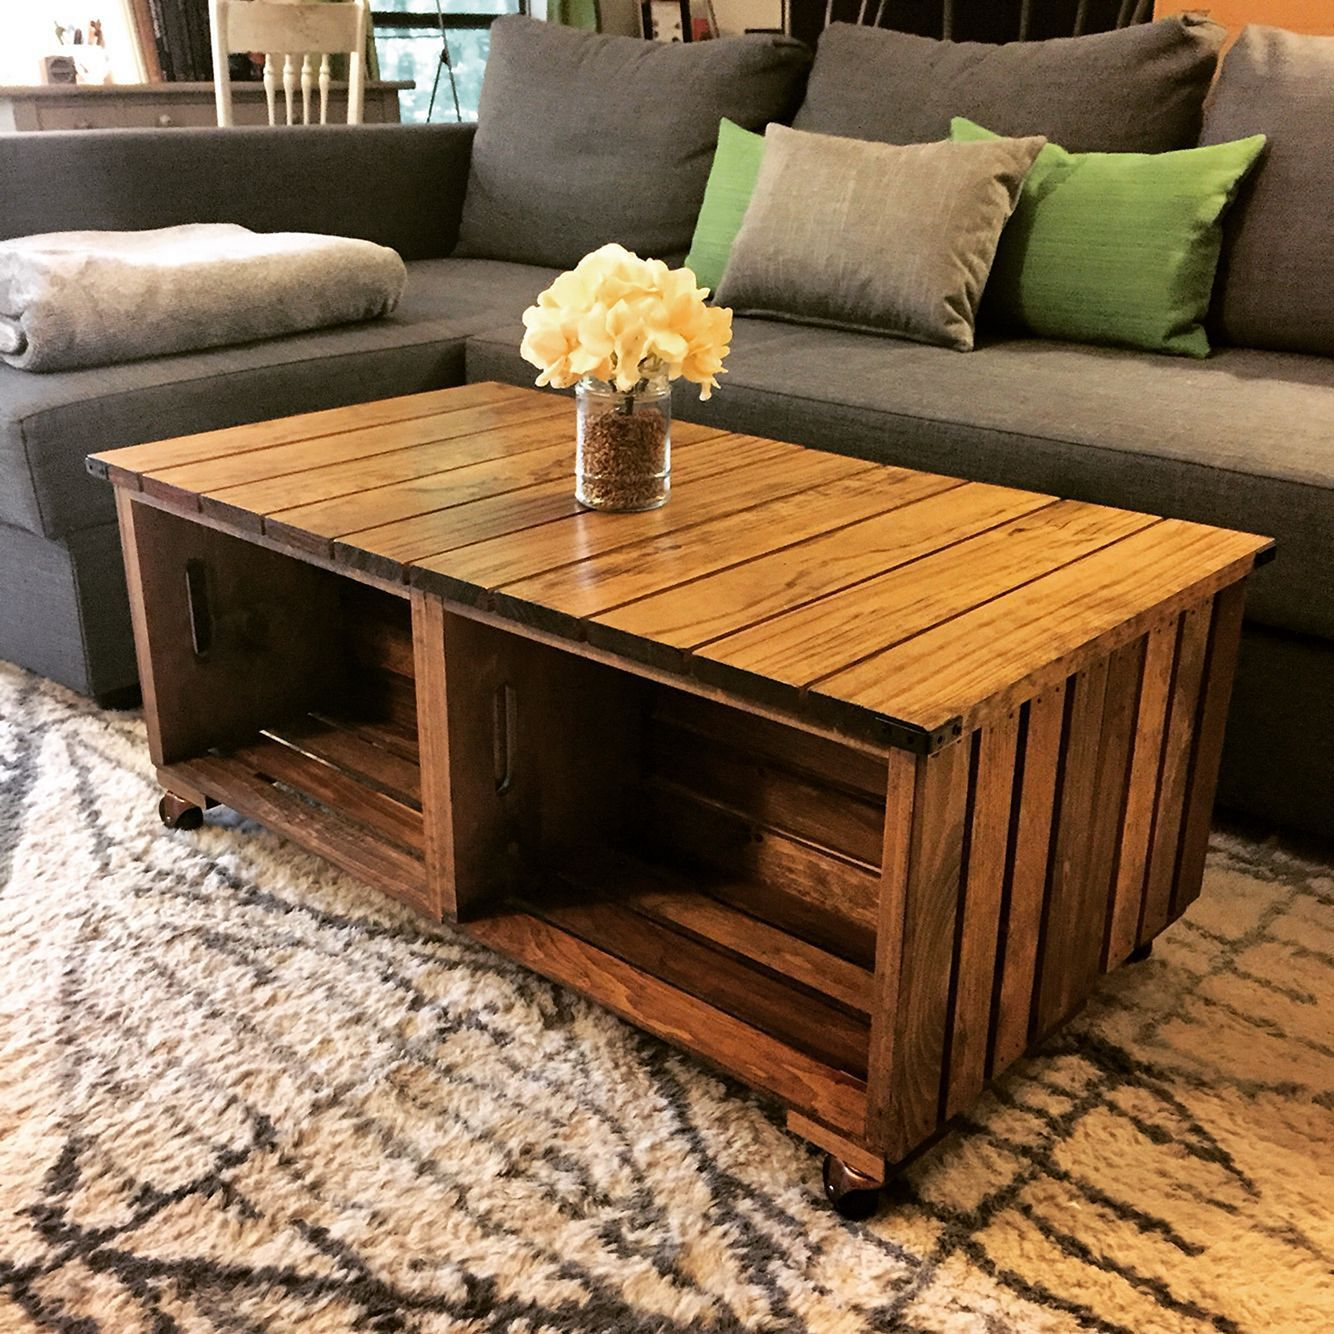 15 Unique Wooden Furniture Ideas To Beautify Your Home In 2020